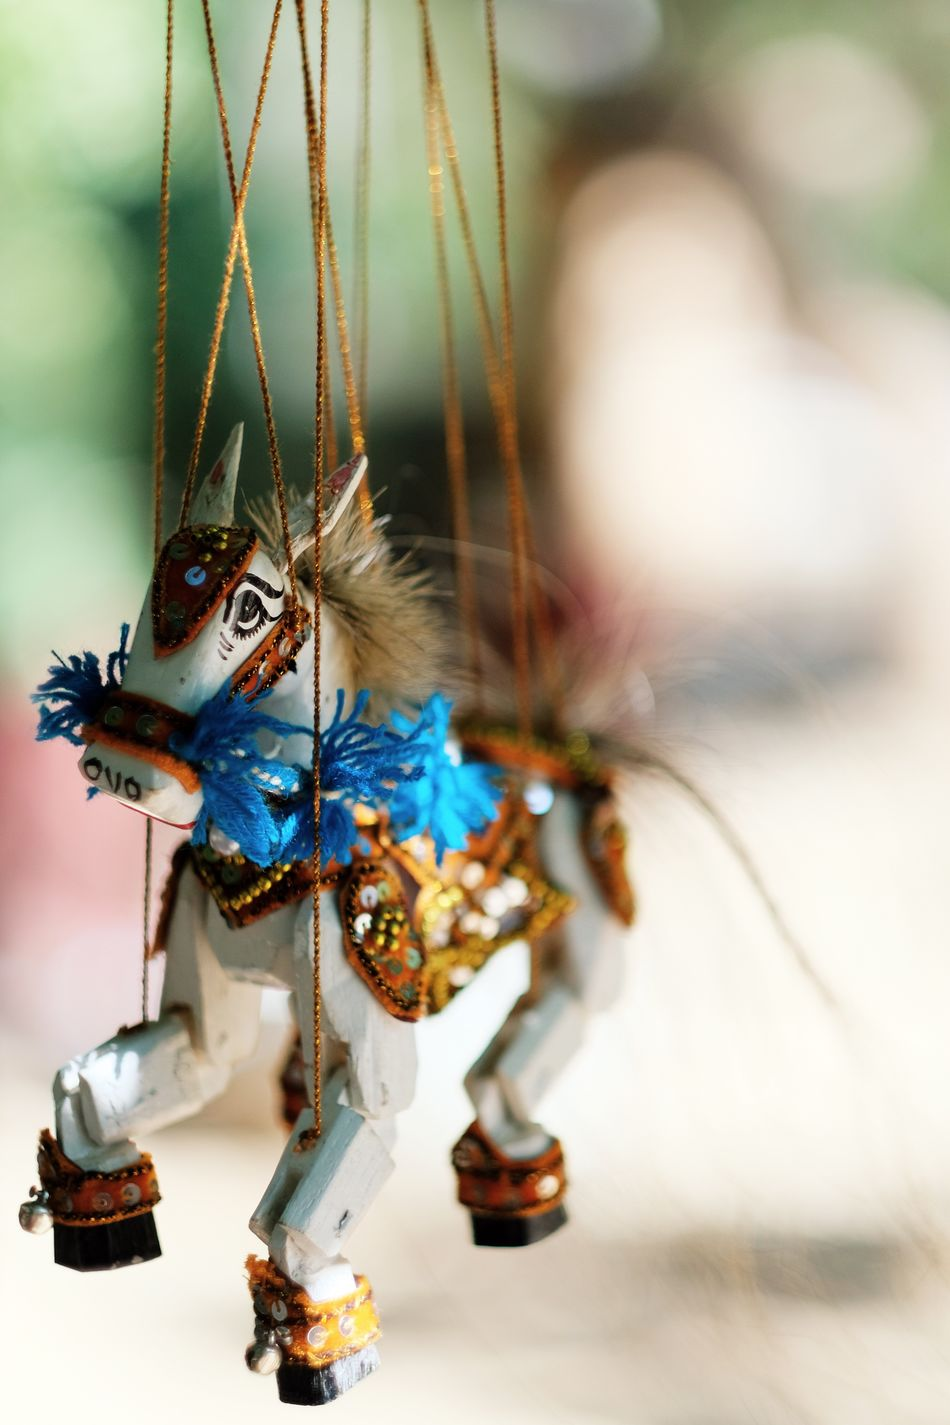 No People Hanging Close-up Animal Themes Indoors  Day Puppet Strings Horse Figurine  Cute Handyphoto Tradition Cultures Focus On Foreground EyeEm Best Shots EyeEm Gallery Check This Out Popular Photos in Bagan , Myanmar